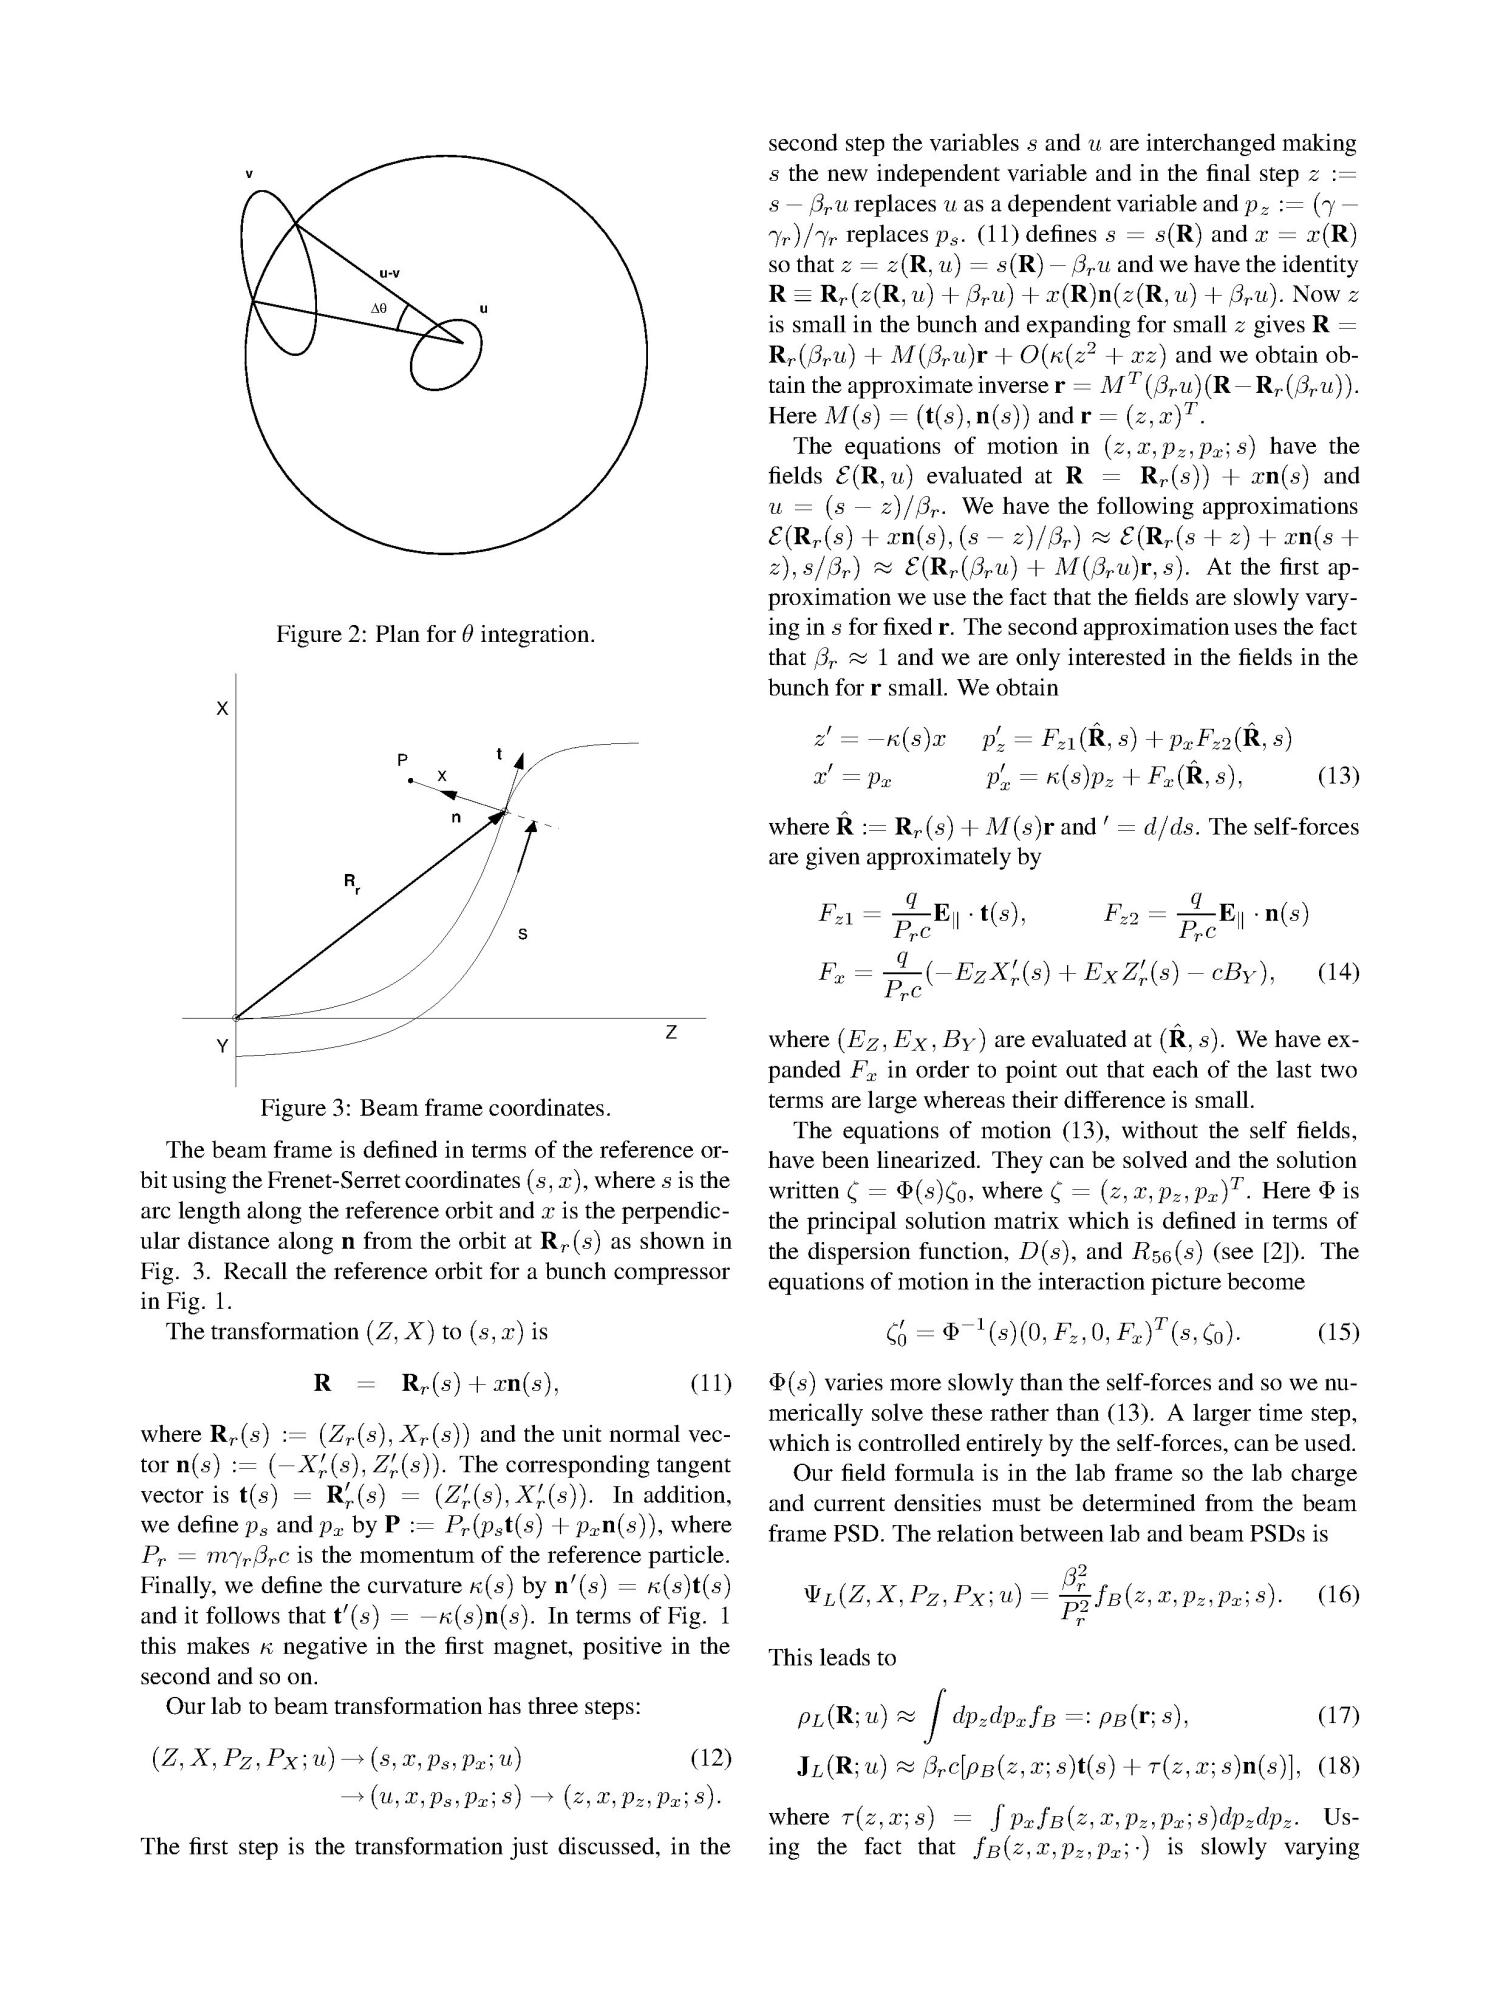 Self-Consistent Computation of Electromagnetic Fields and Phase Space Densities for Particles on Curved Planar Orbits                                                                                                      [Sequence #]: 3 of 5